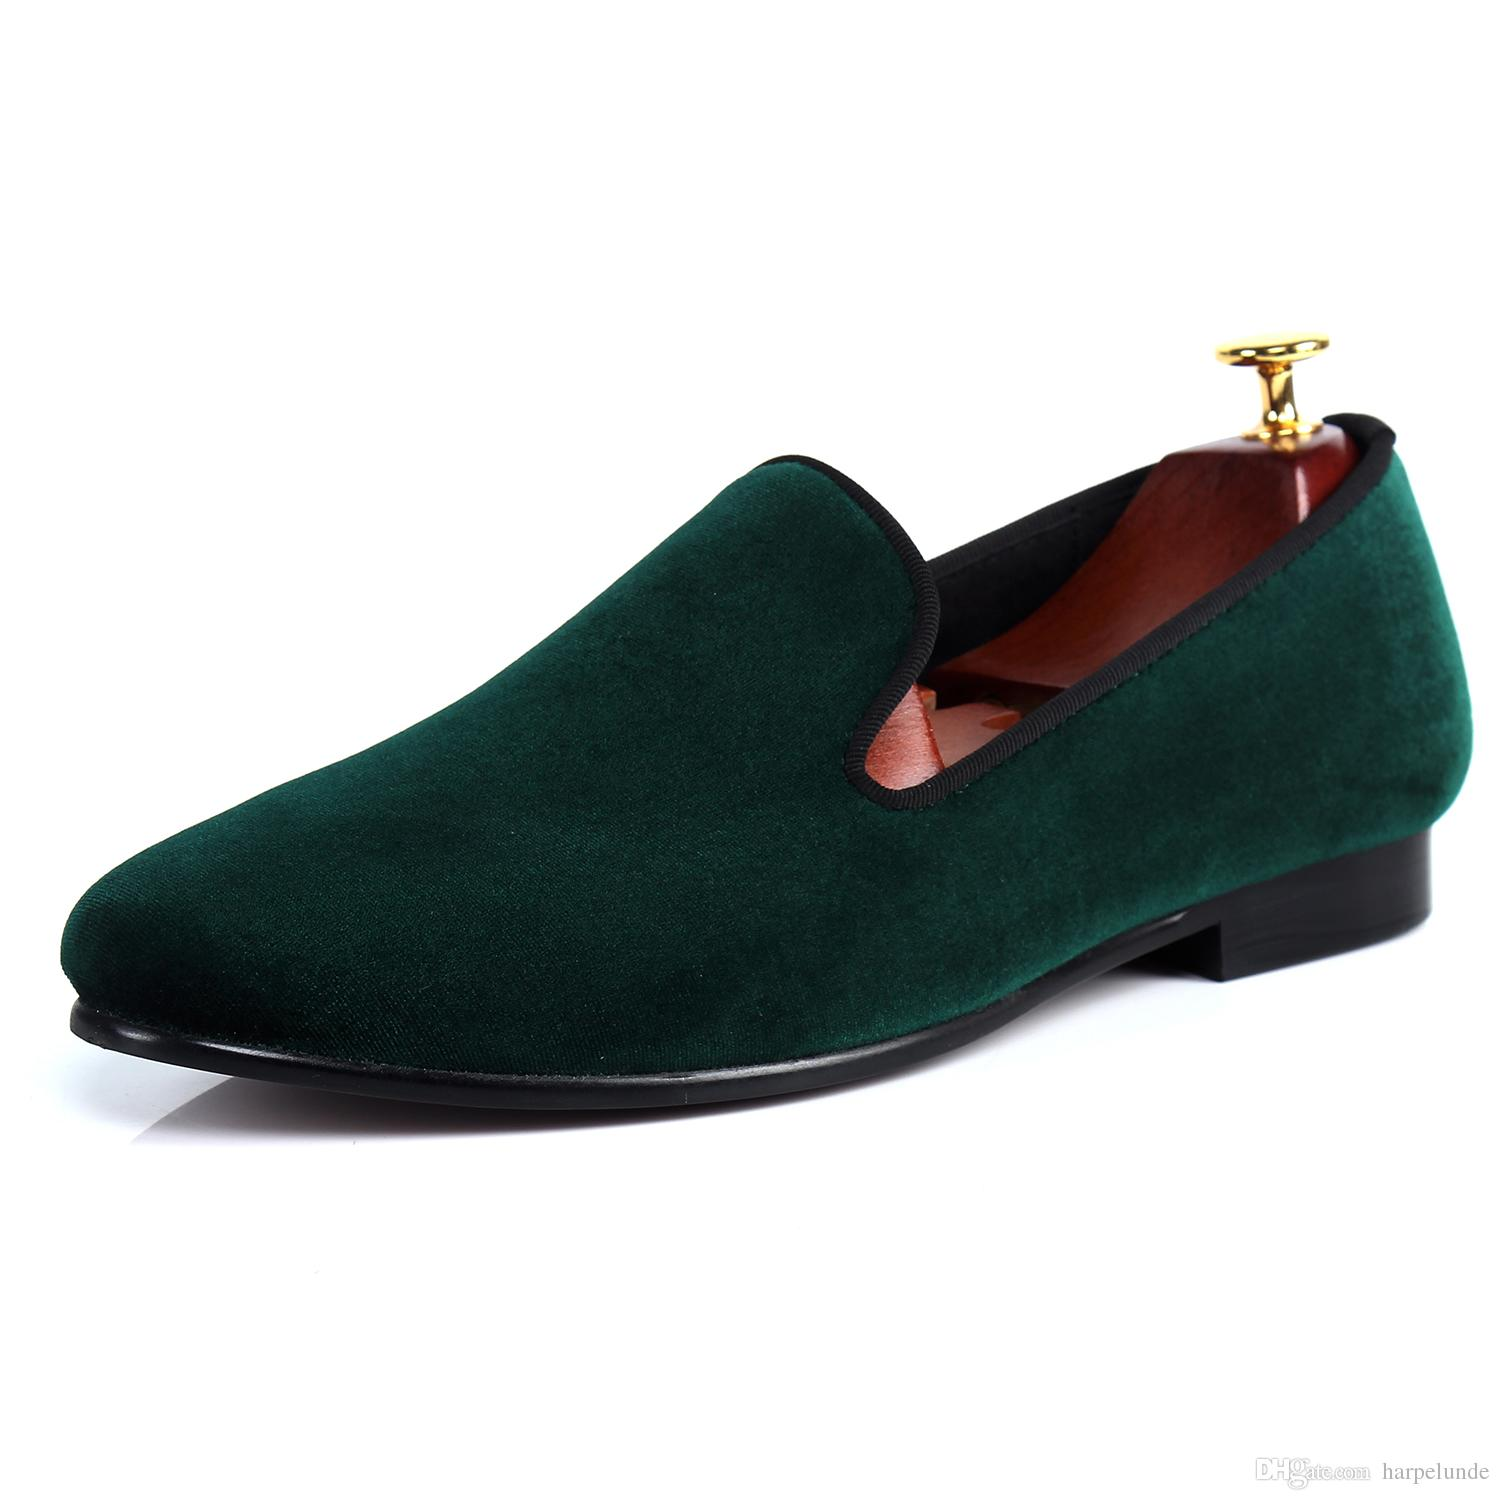 Velvet color dress shoes